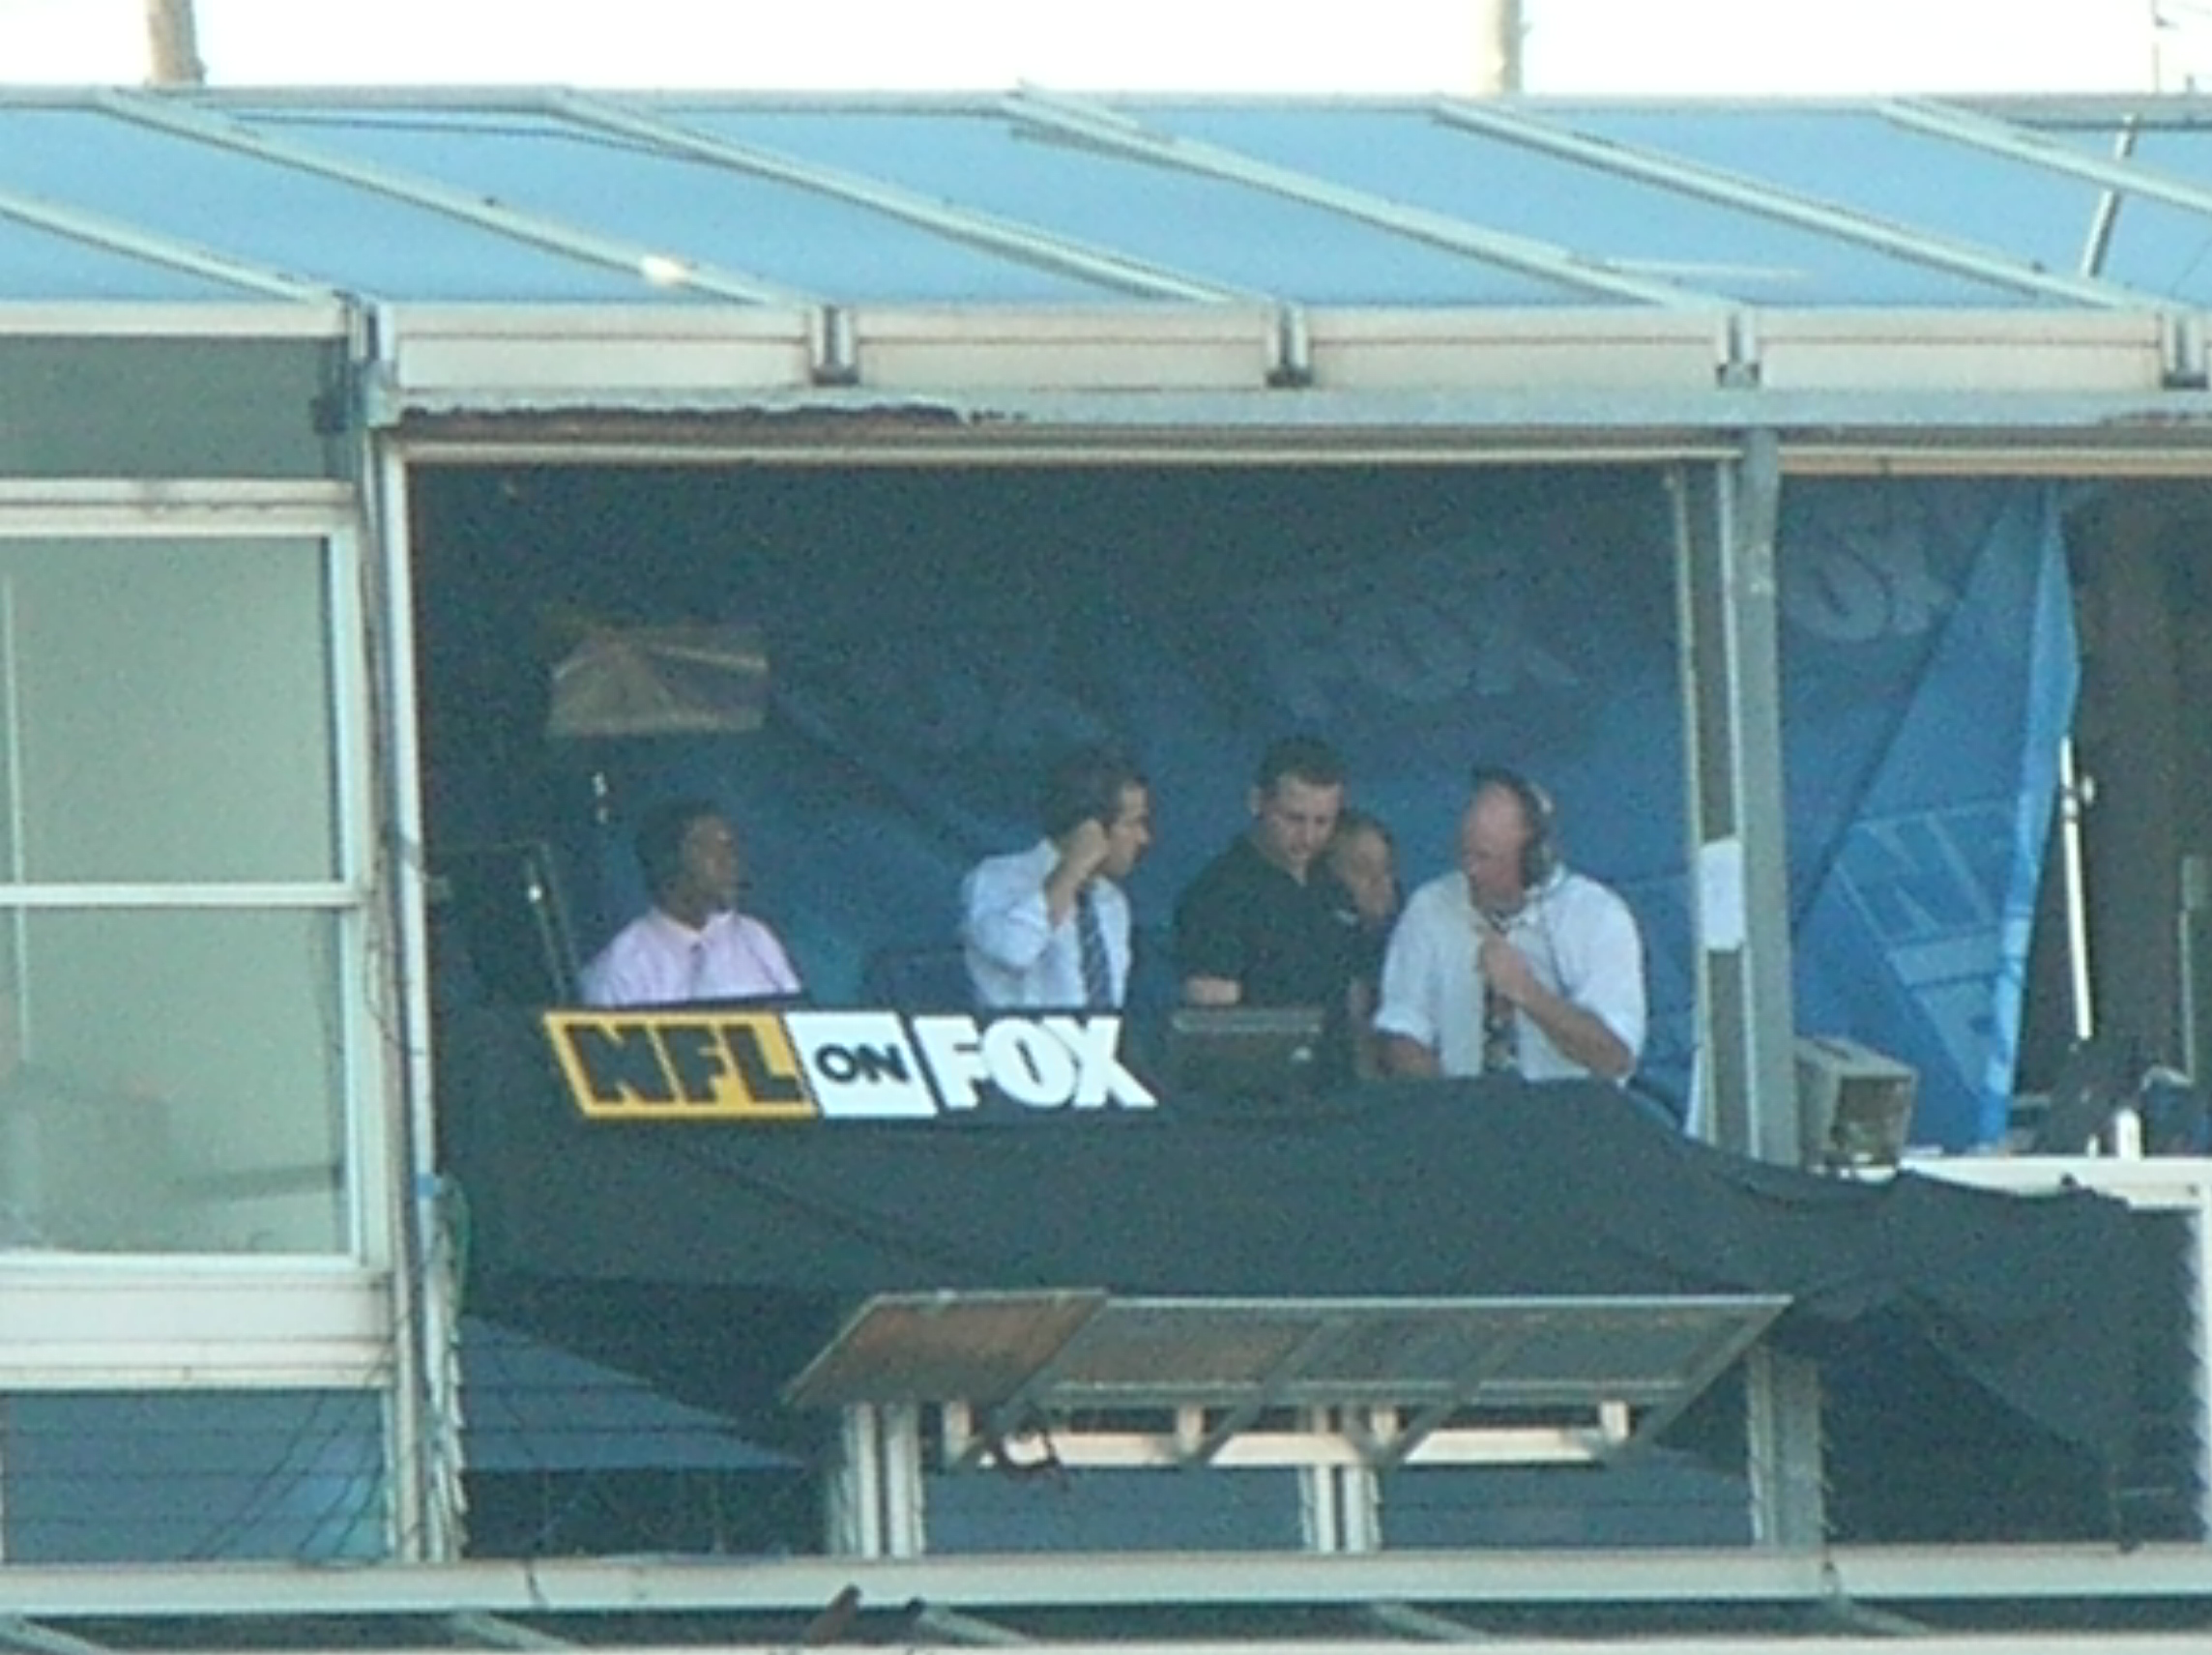 File Nfl On Fox Booth At Candlestick Park 11 16 08 Jpg